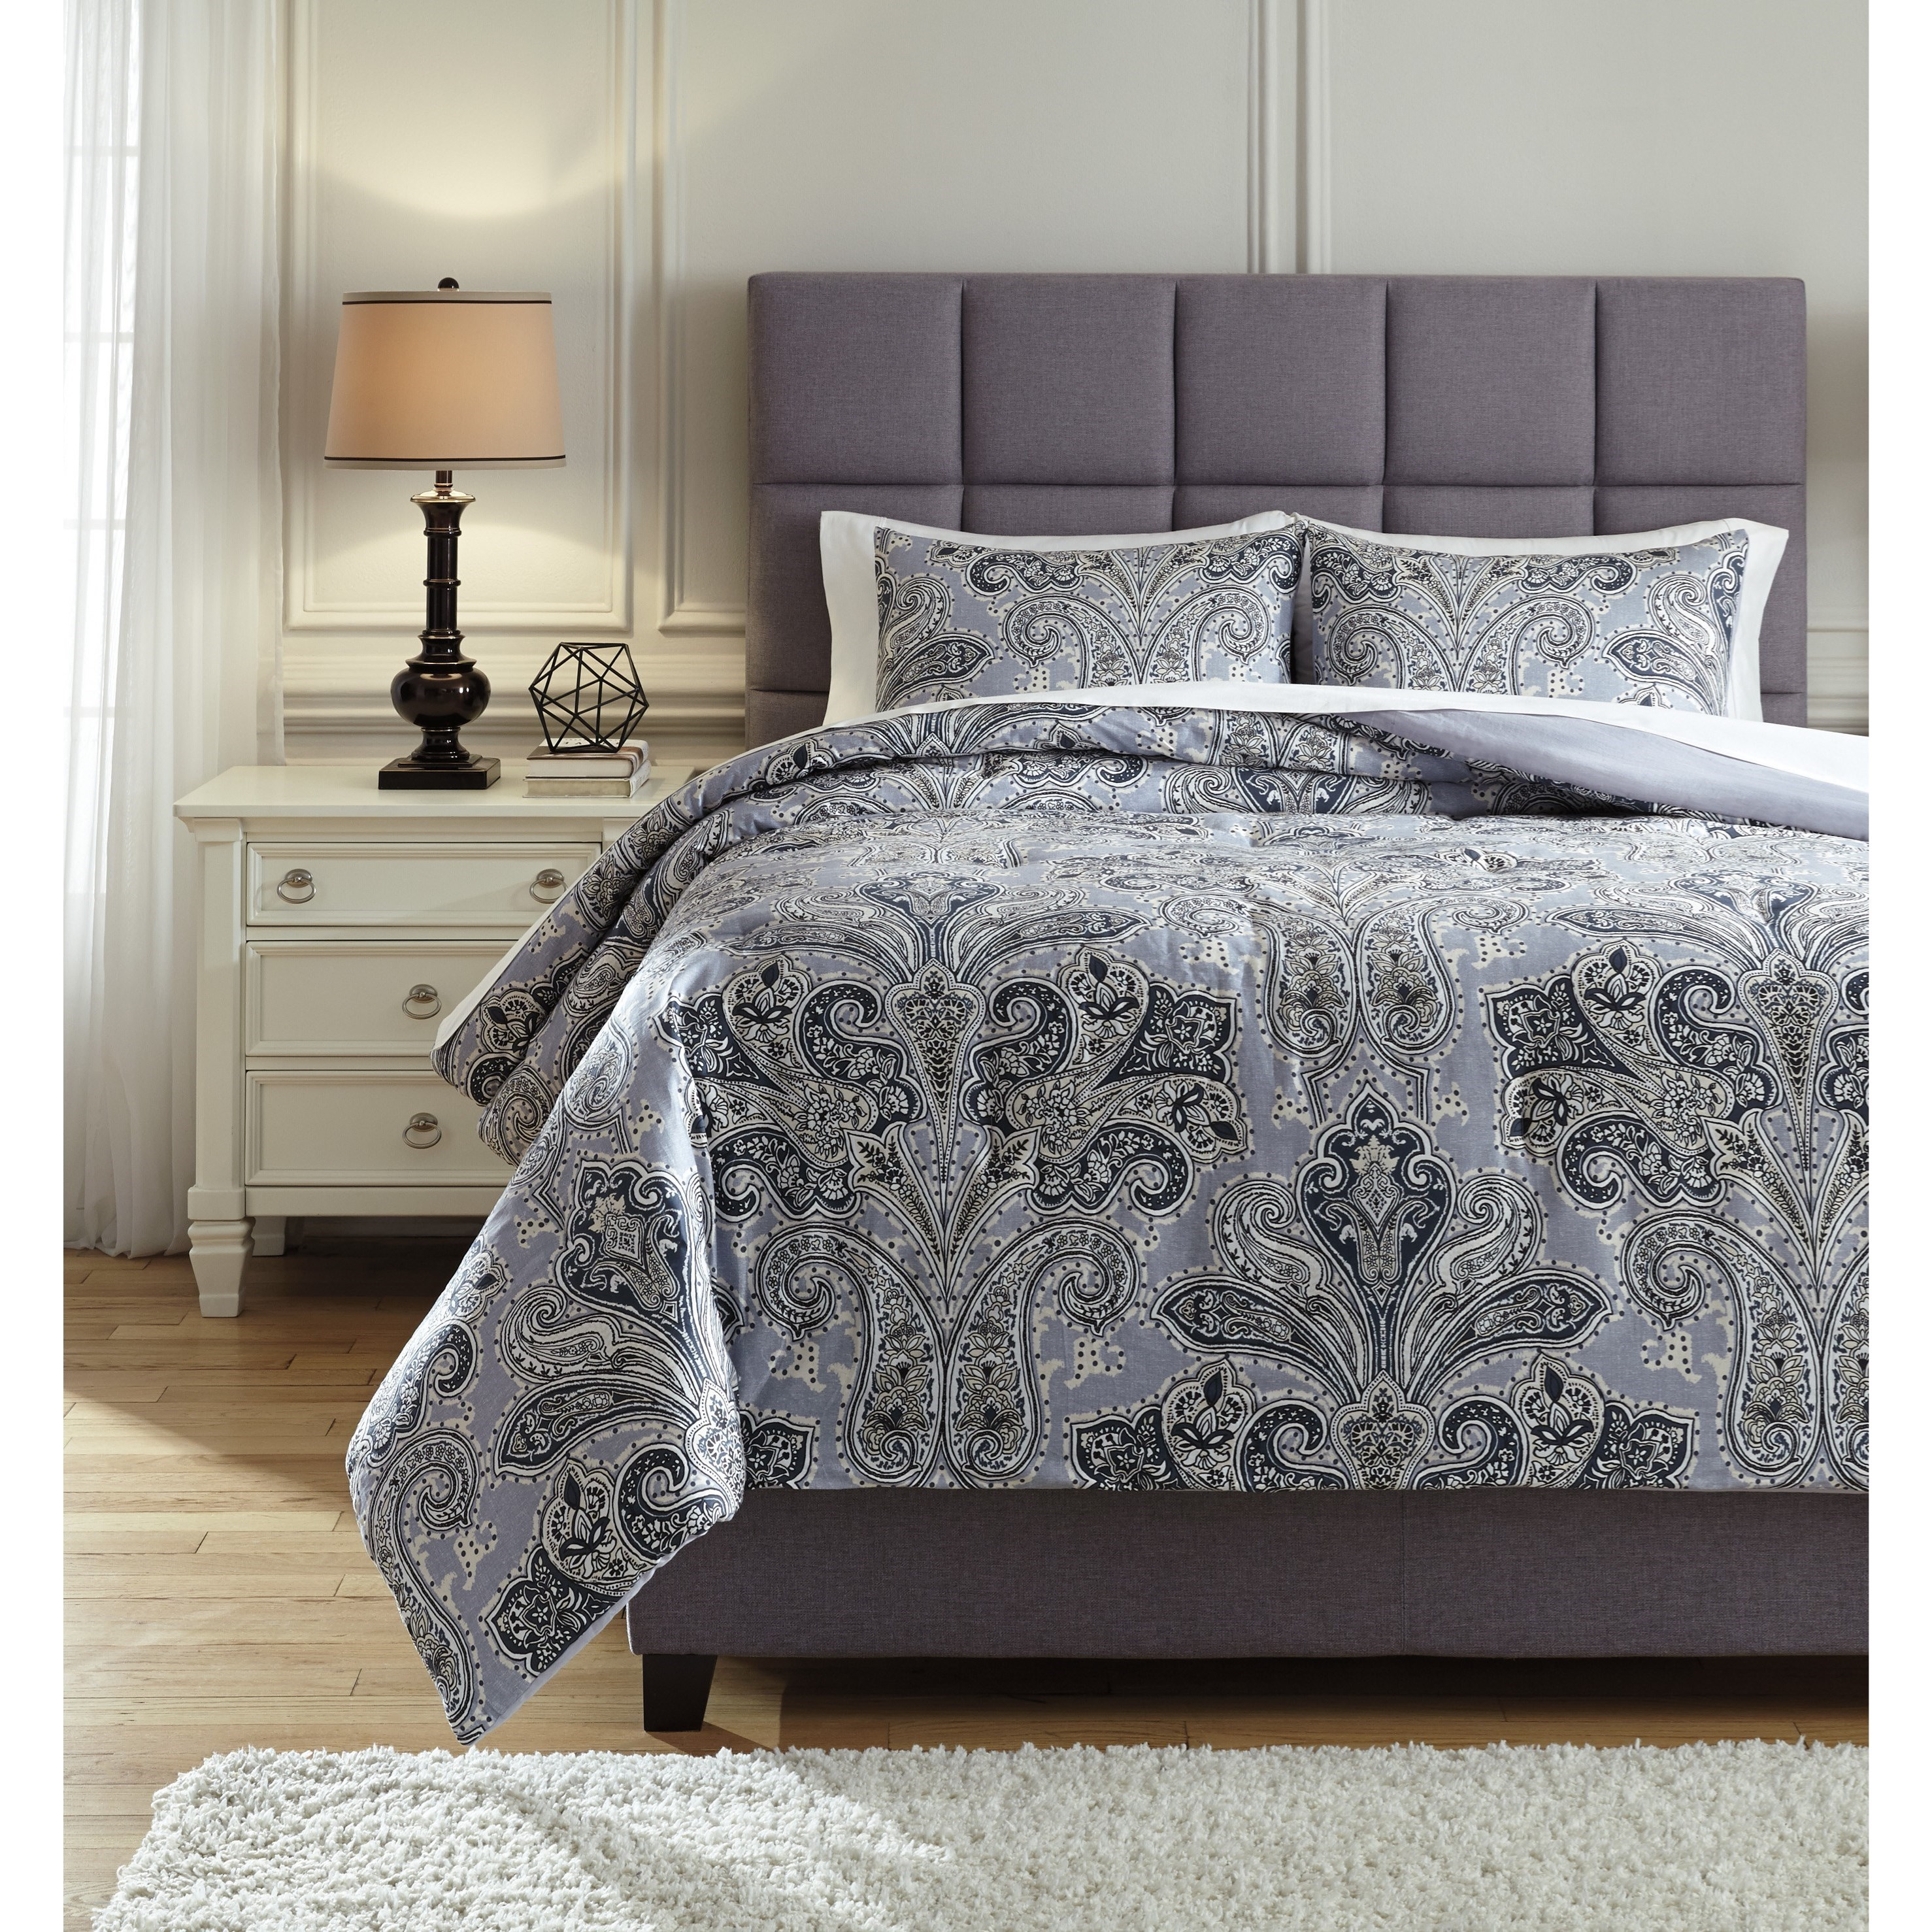 King Susannah Blue/Cream Comforter Set